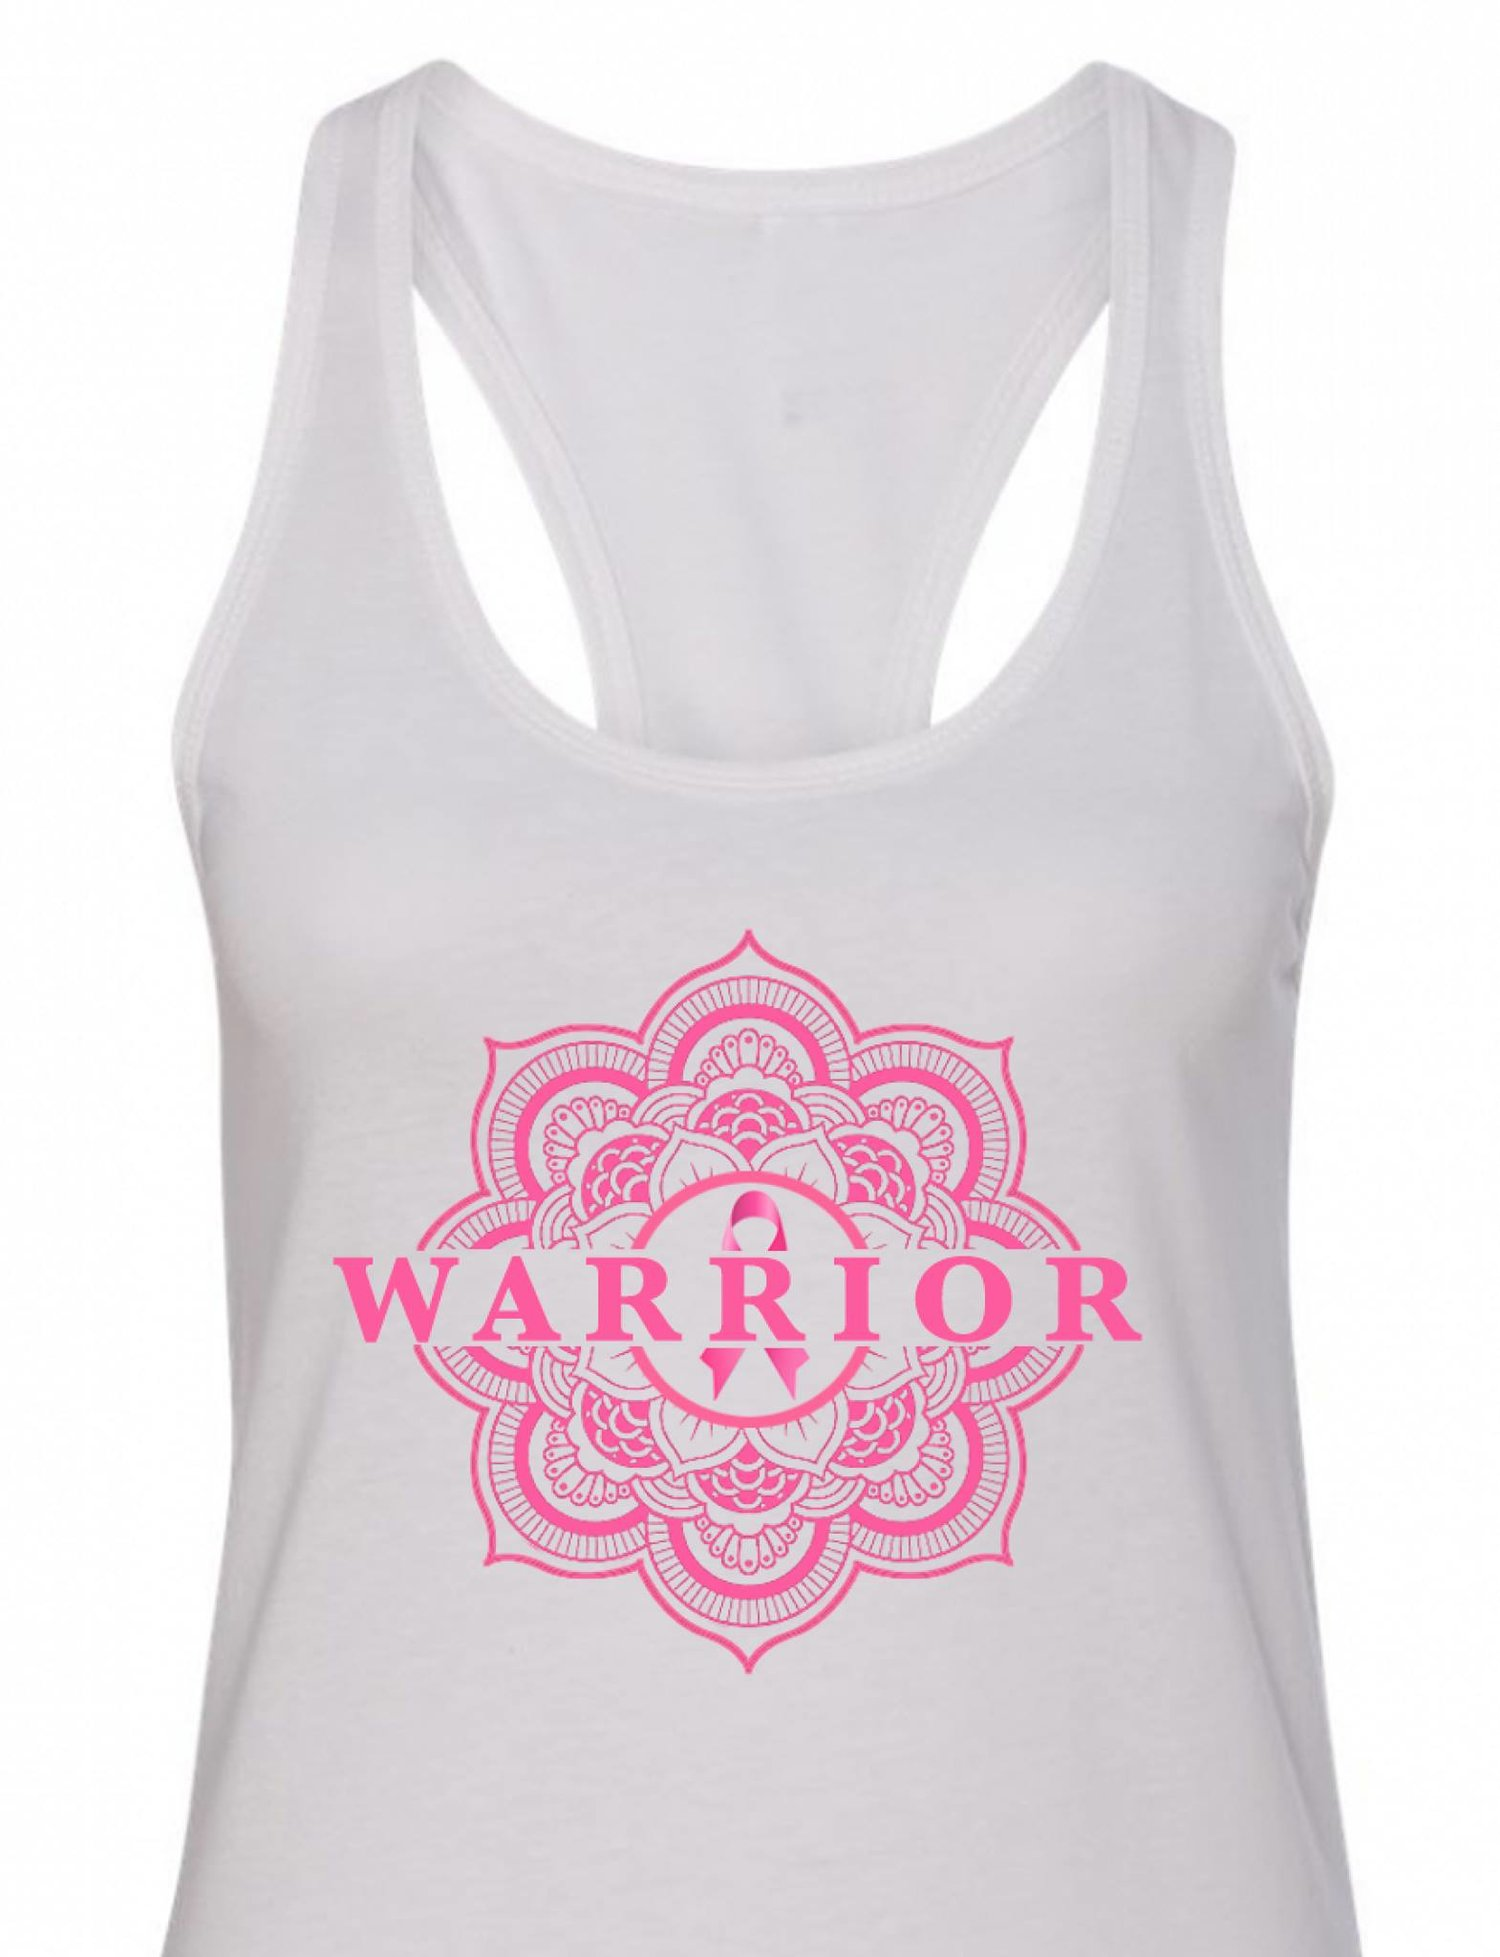 Titusville Yoga Loft - Yoga for Breast Cancer Awareness Warrior Tank Tops at The Titusville Yoga Loft Downtown Titusville